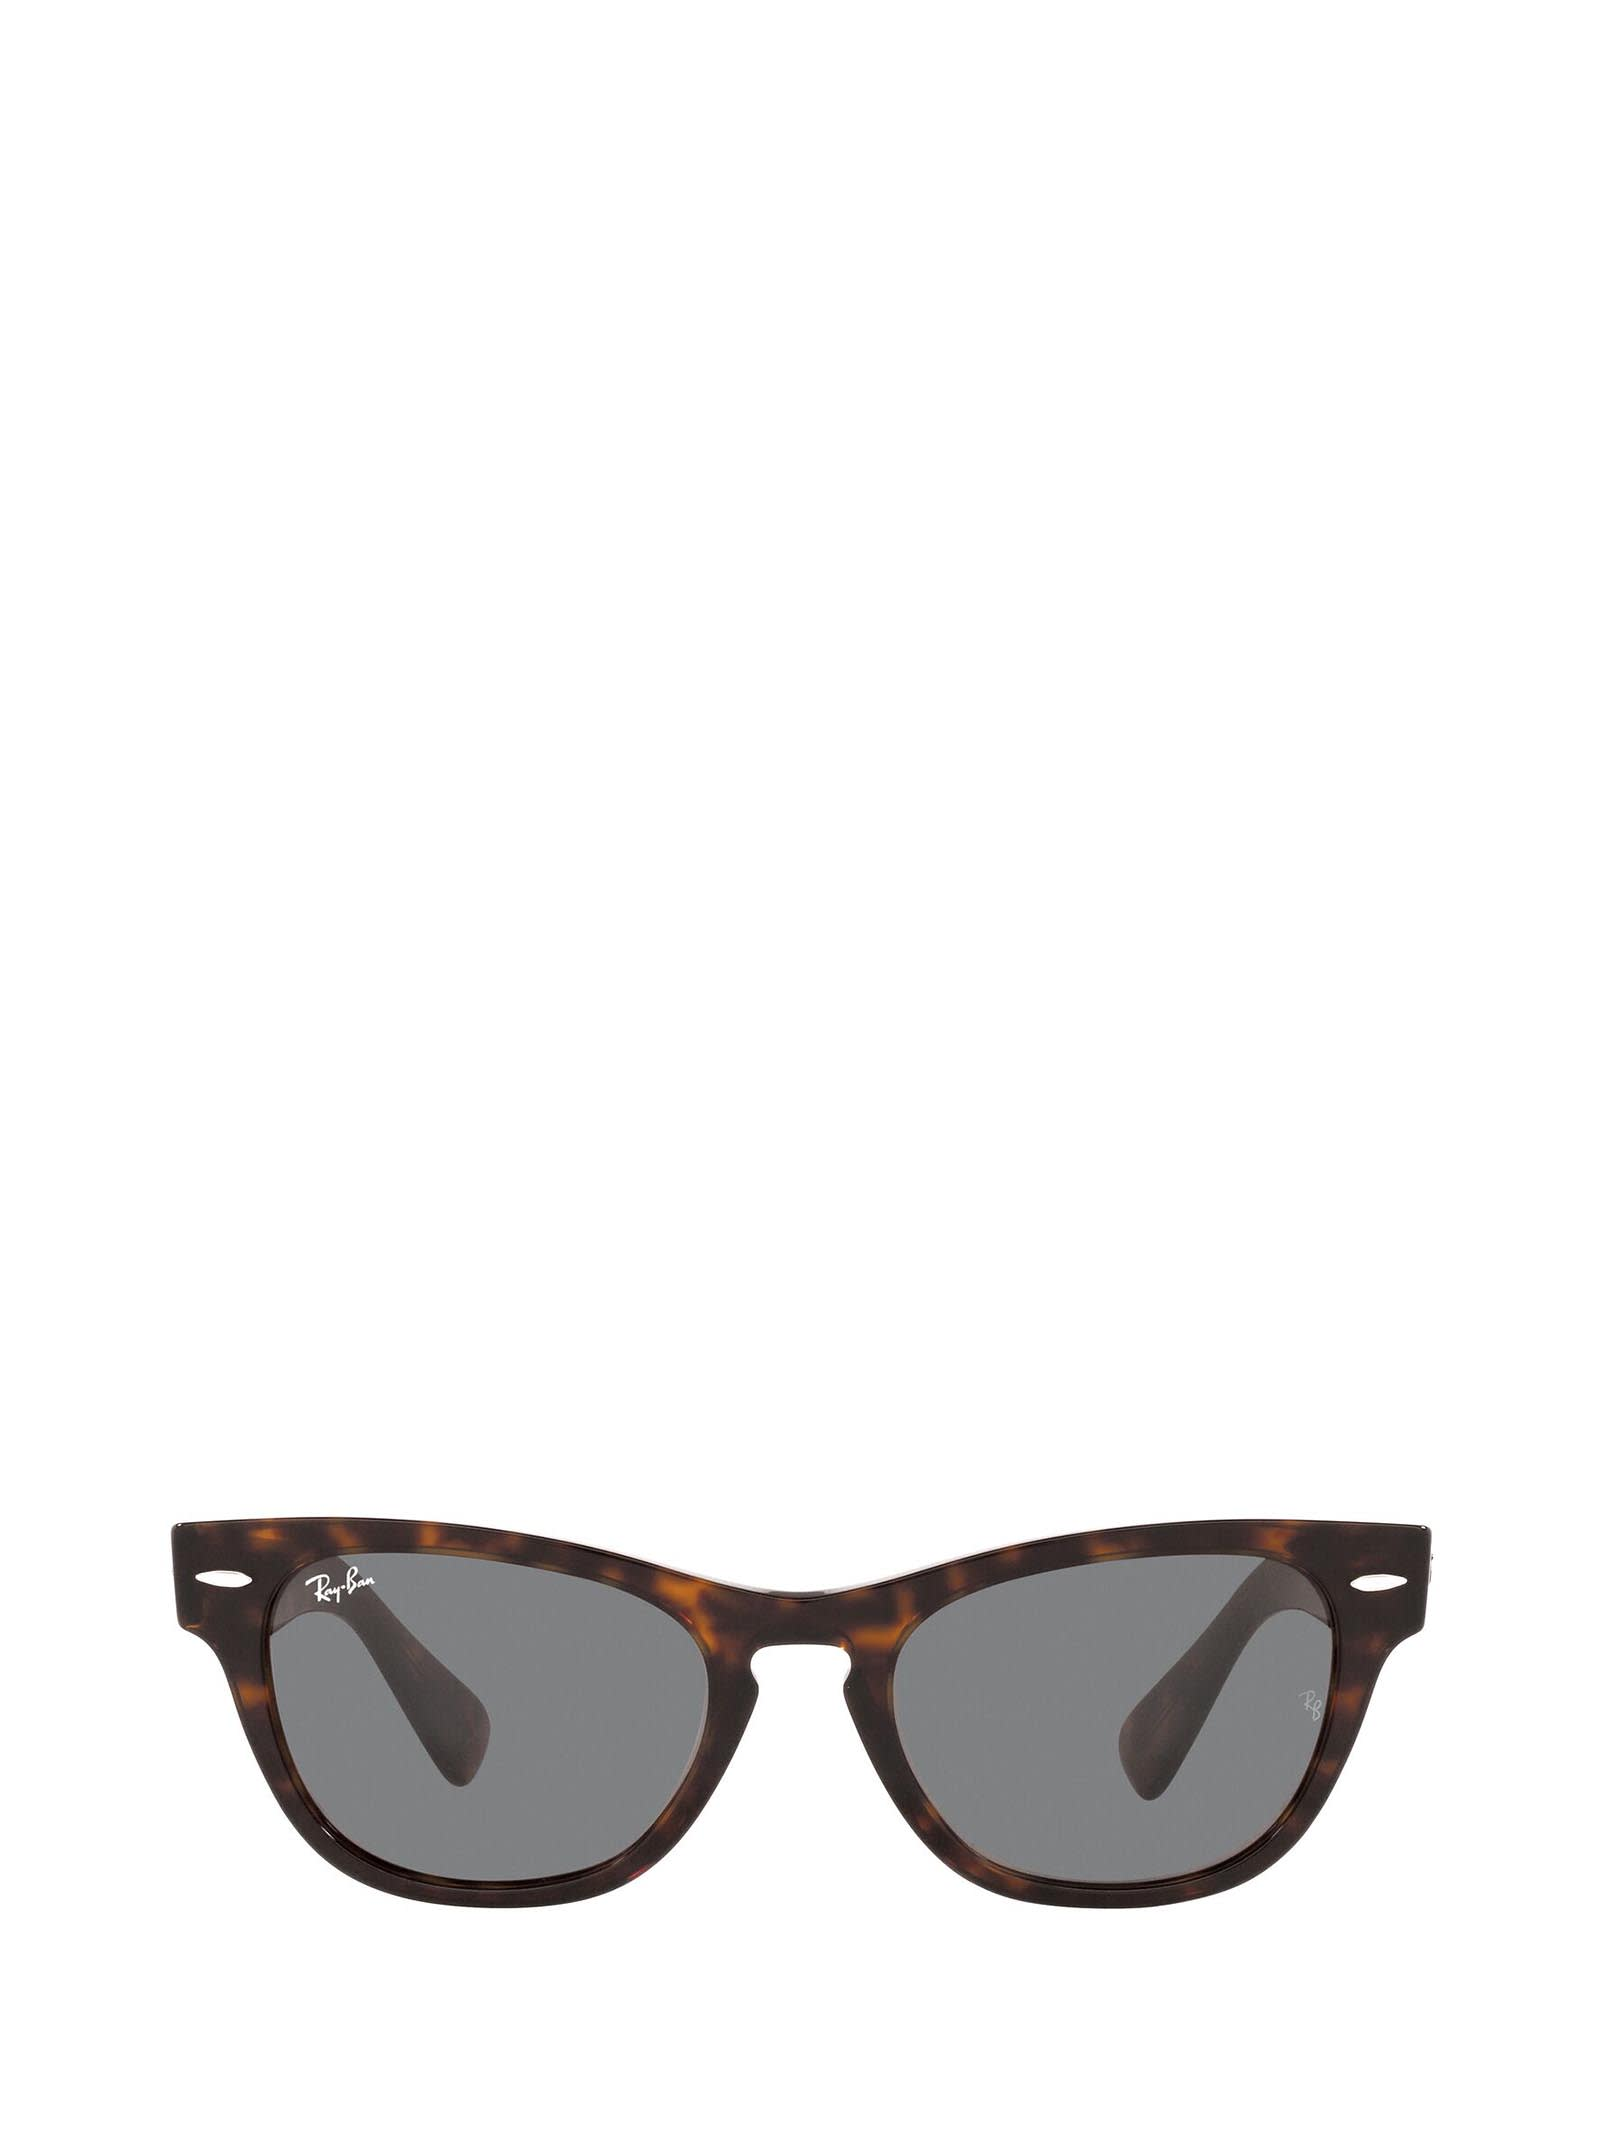 Ray-Ban Ray-ban Rb2201 Tortoise Sunglasses